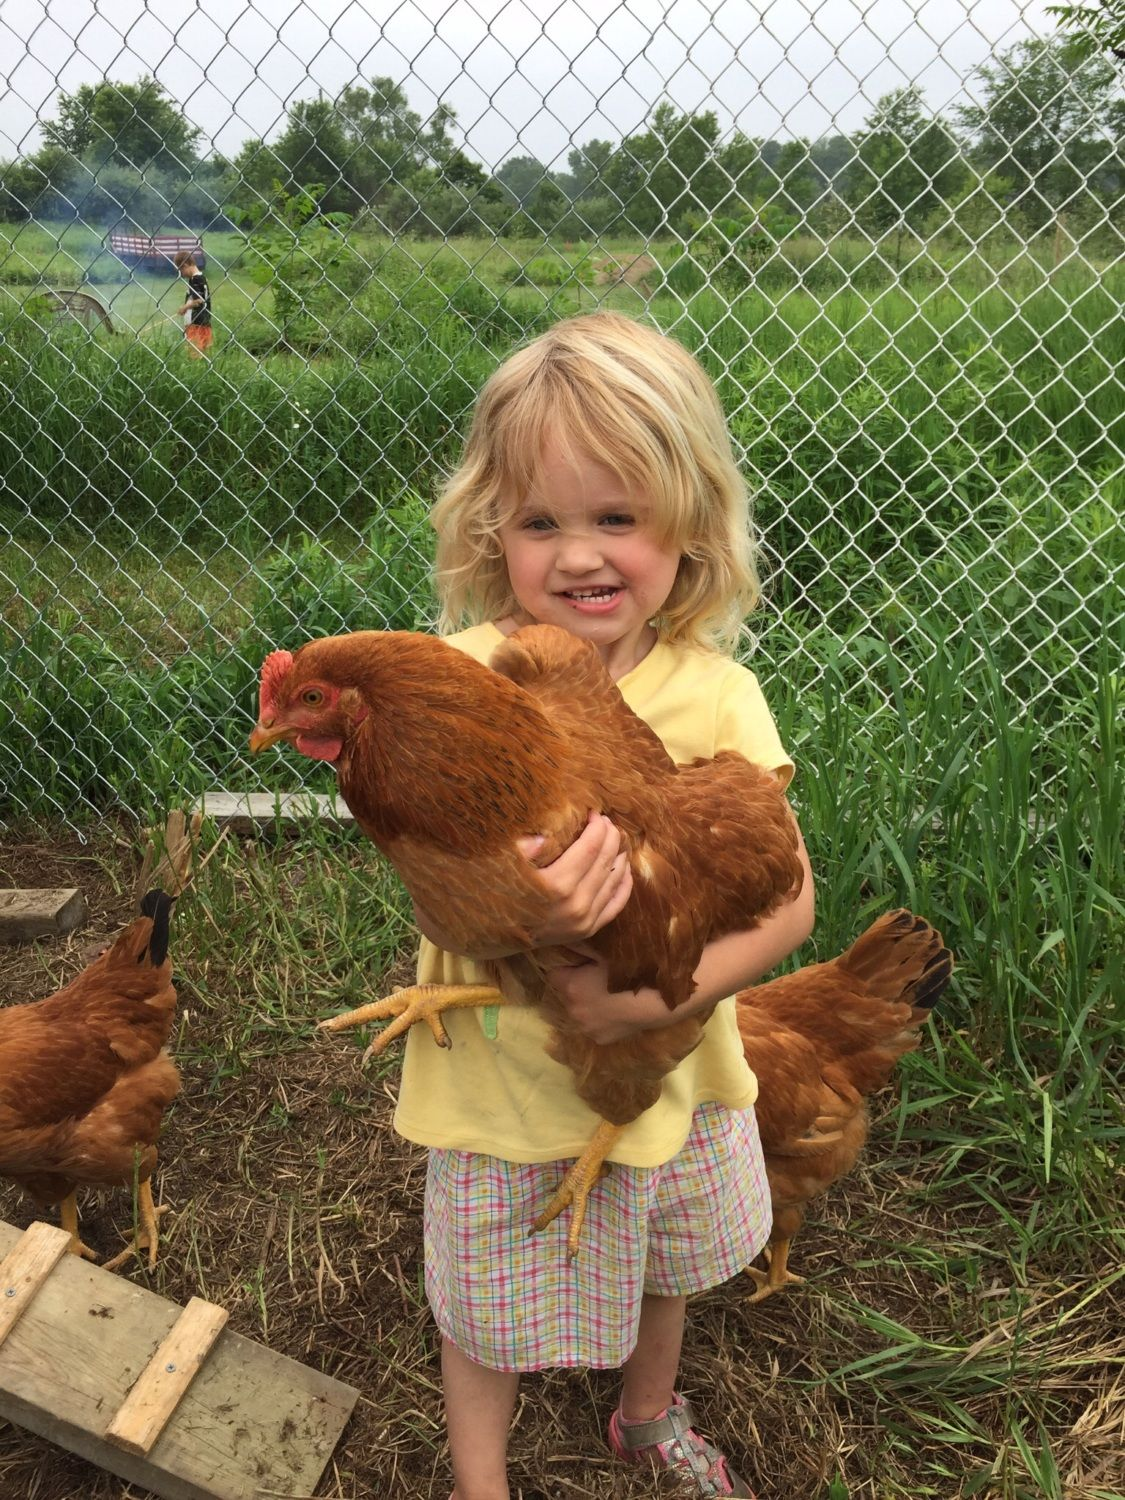 Our little girl loves to pick up the chickens and hug them. They don't seem to mind.